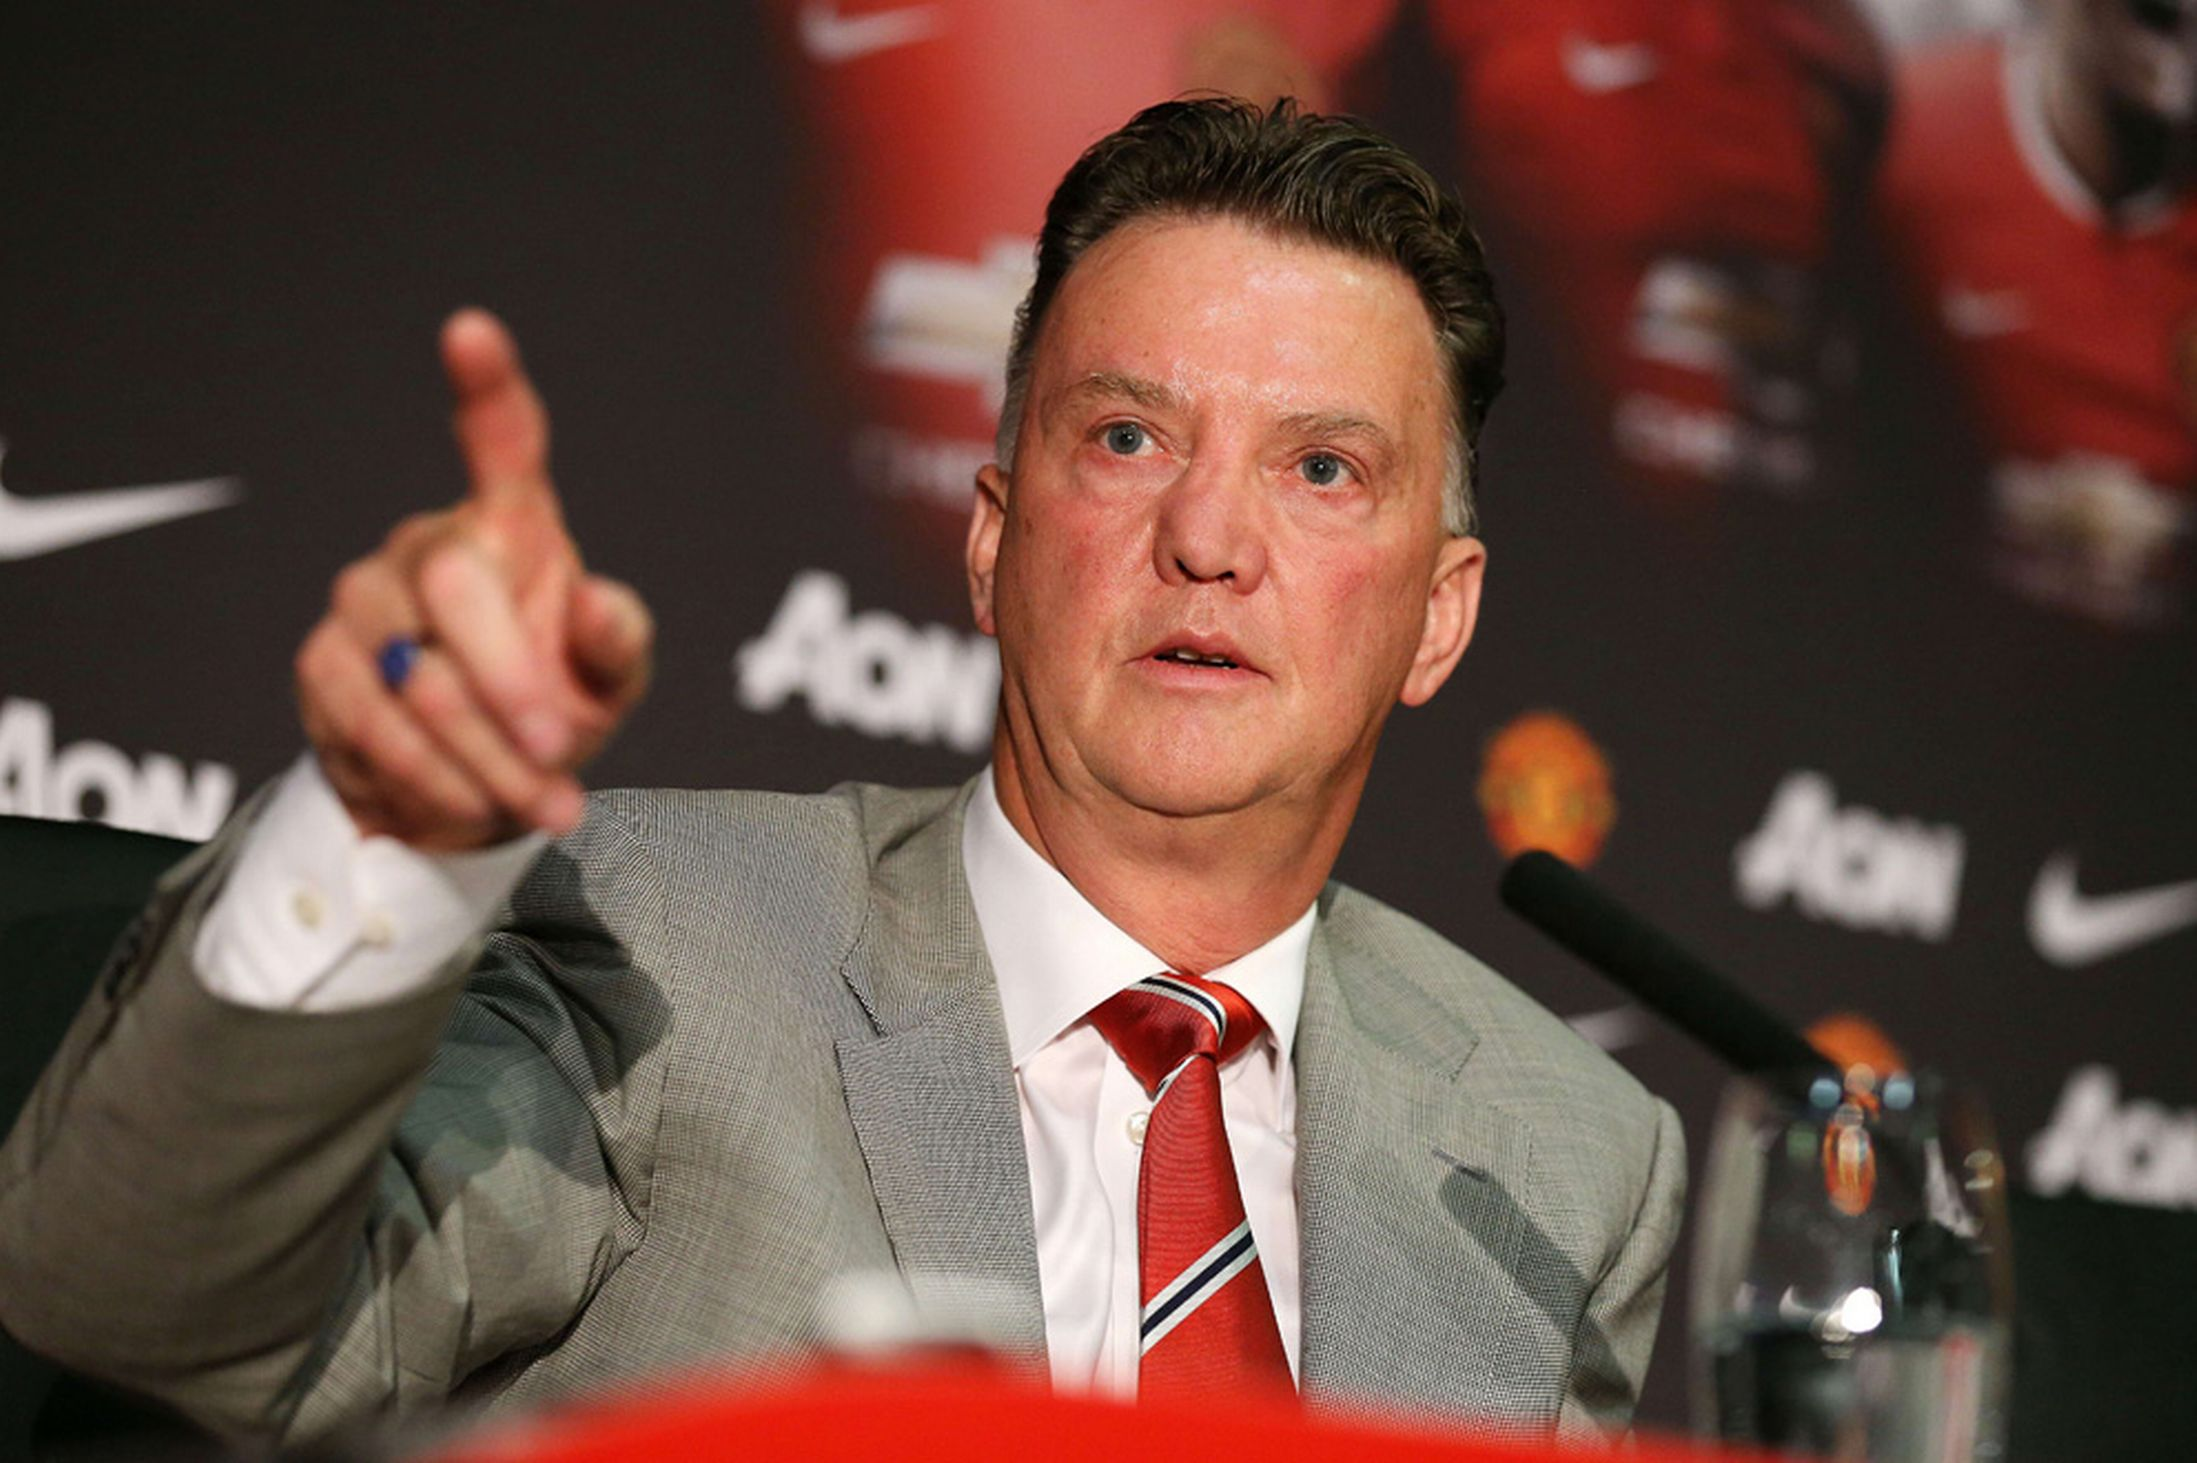 Manchester United players must be more 'horny', says Louis van Gaal